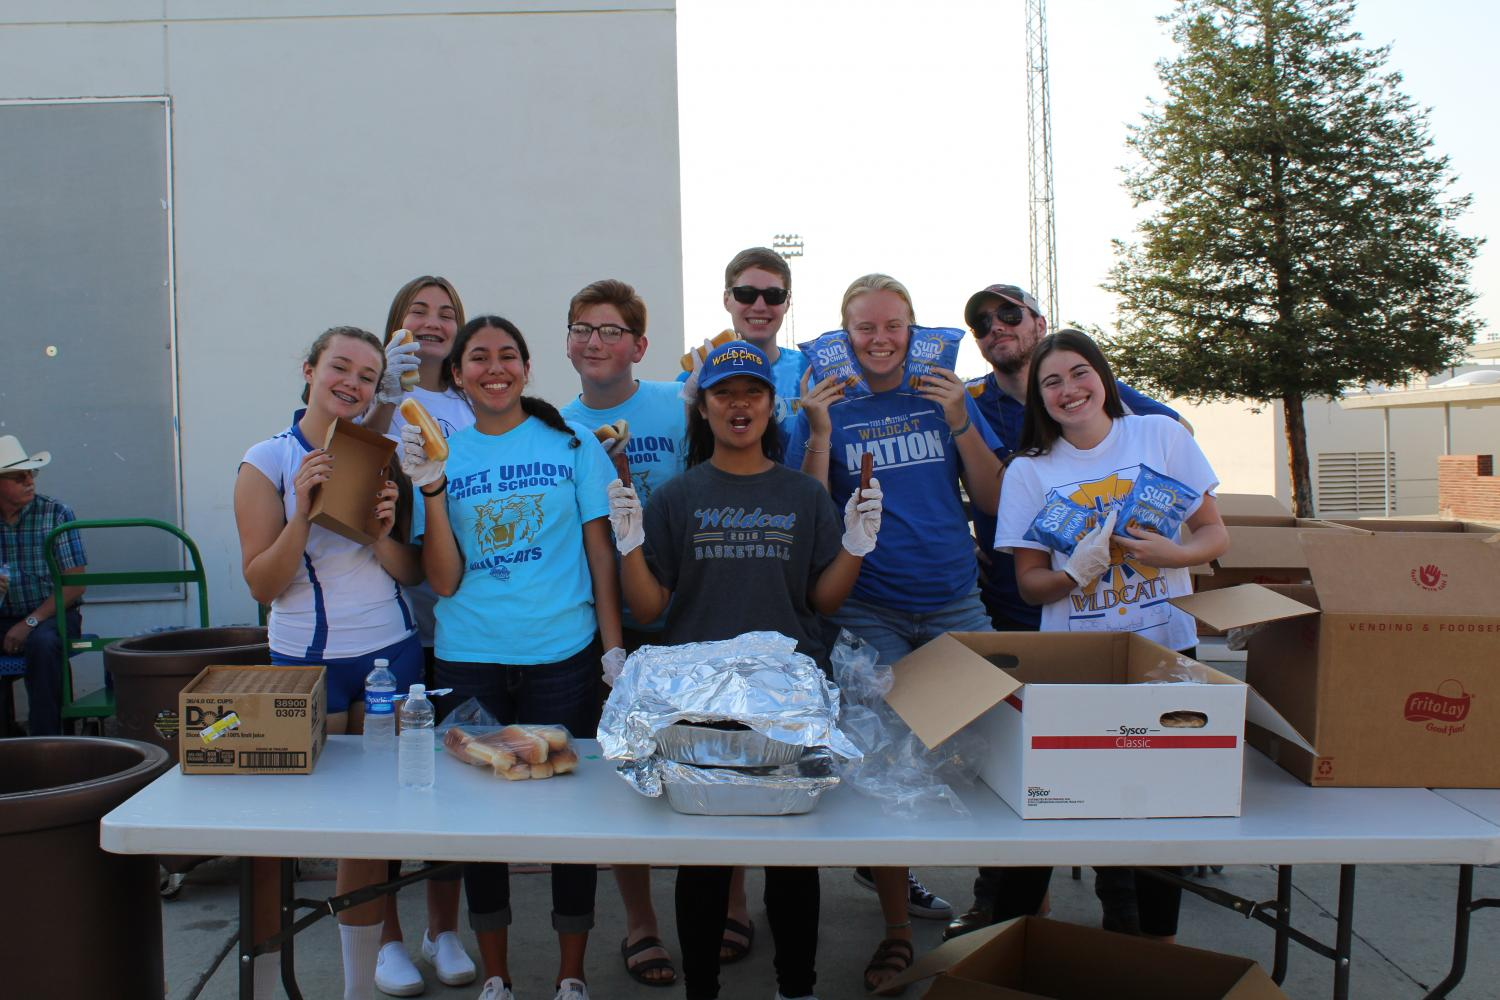 Student+volunteers+served+a+hot+dog+dinner.